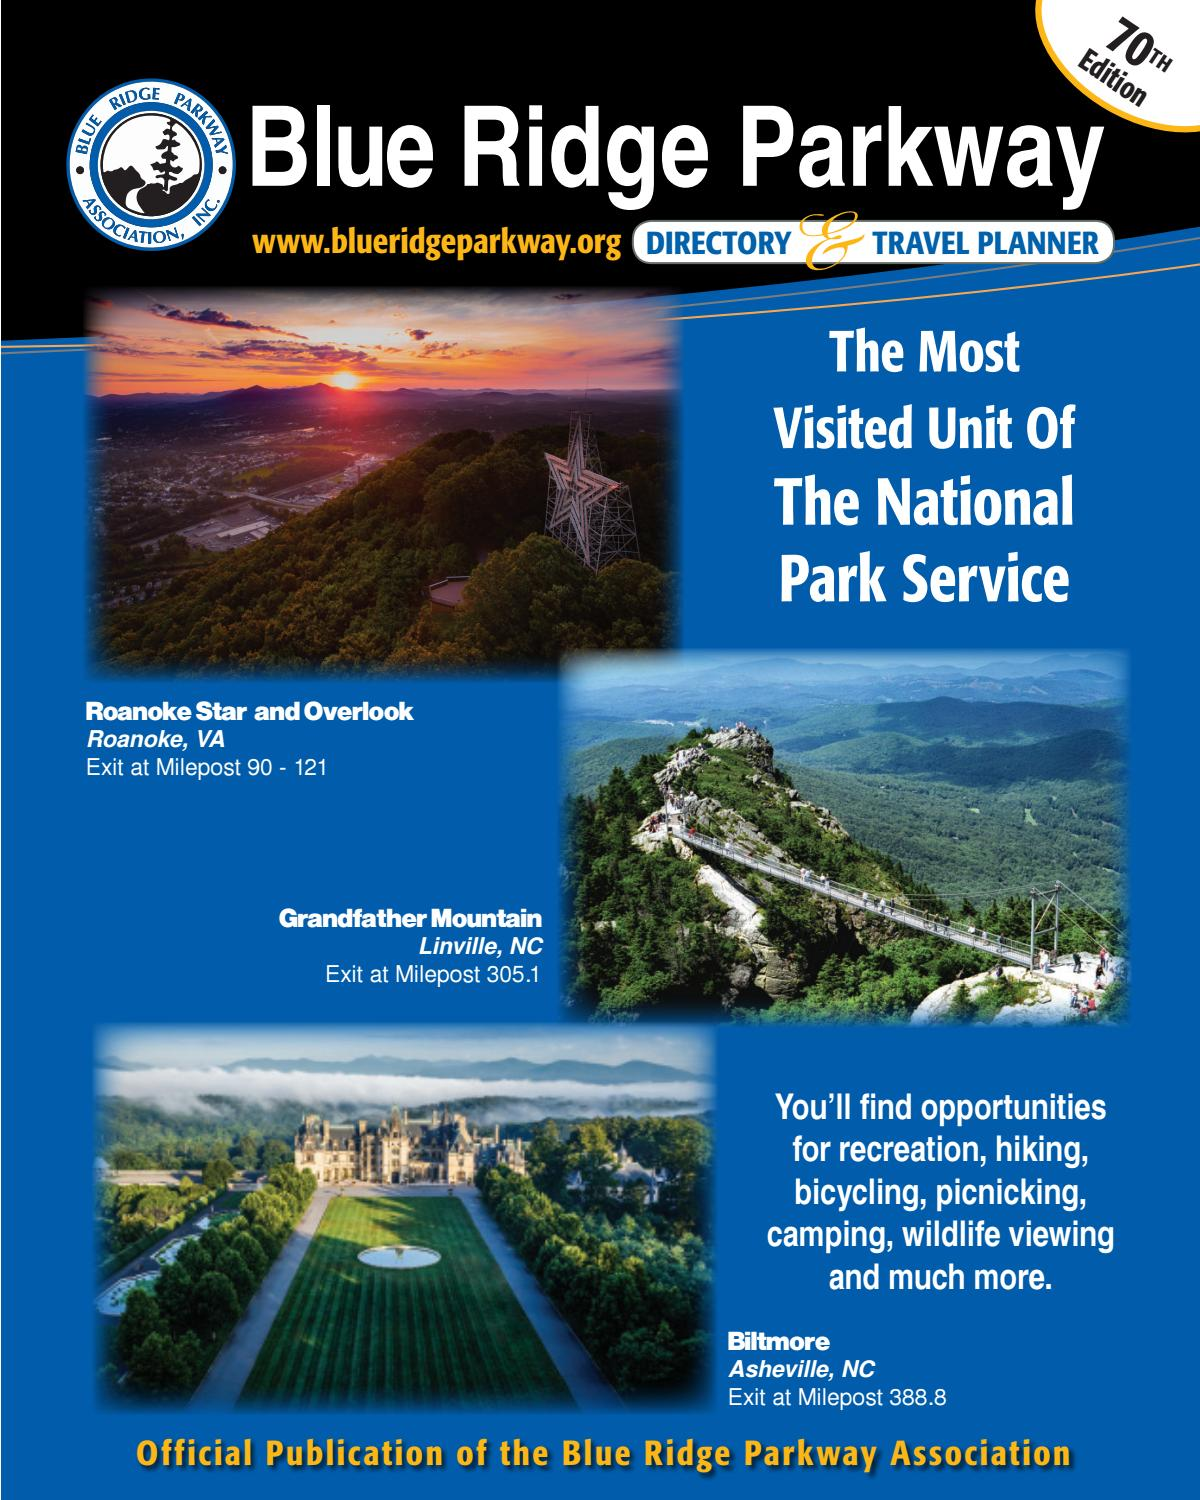 Blue Ridge Parkway Directory & Travel Planner - 70th ...